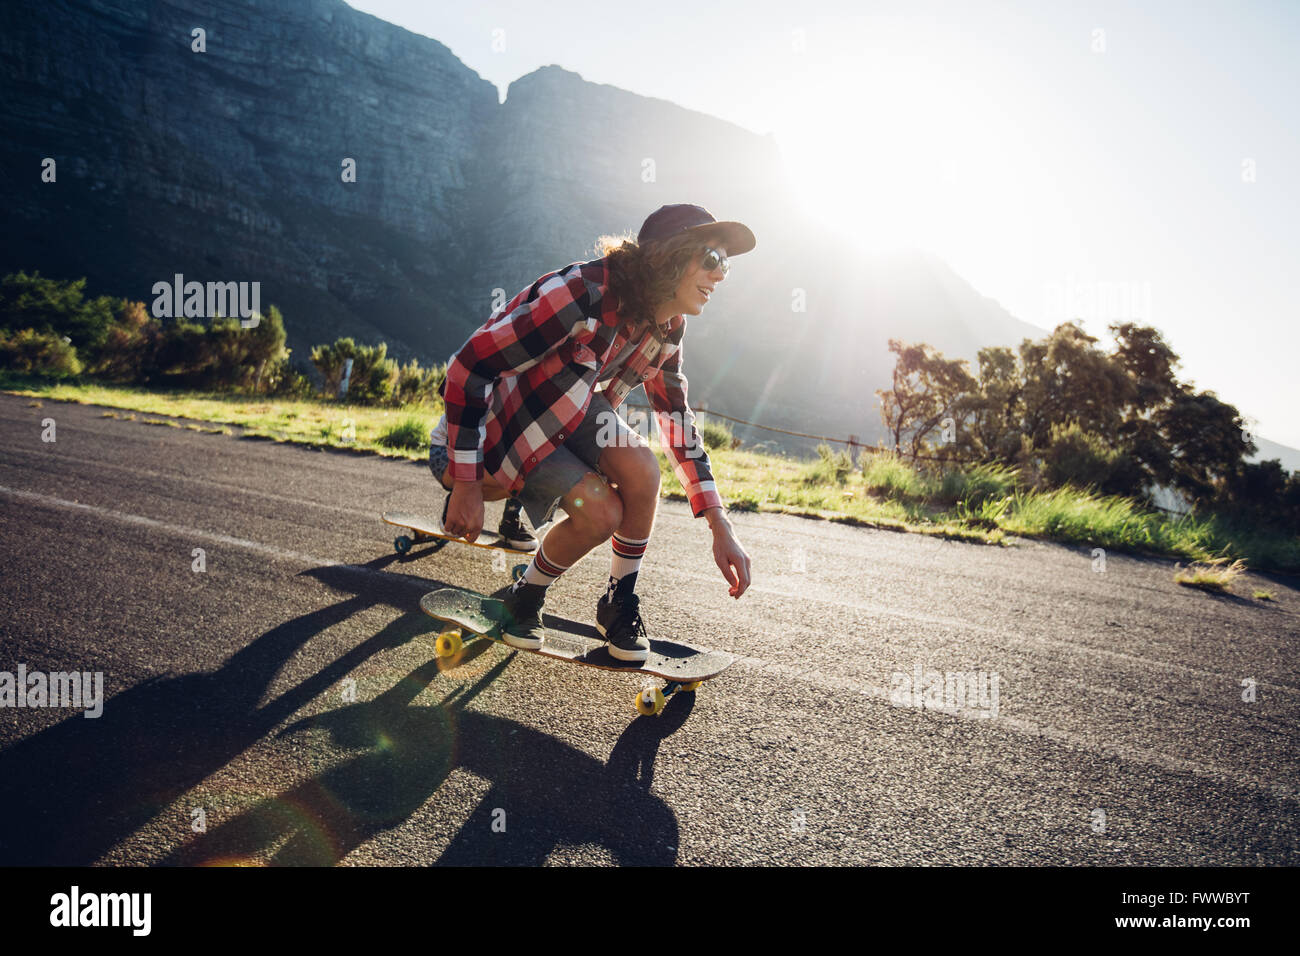 skateboarding stockfotos skateboarding bilder alamy. Black Bedroom Furniture Sets. Home Design Ideas